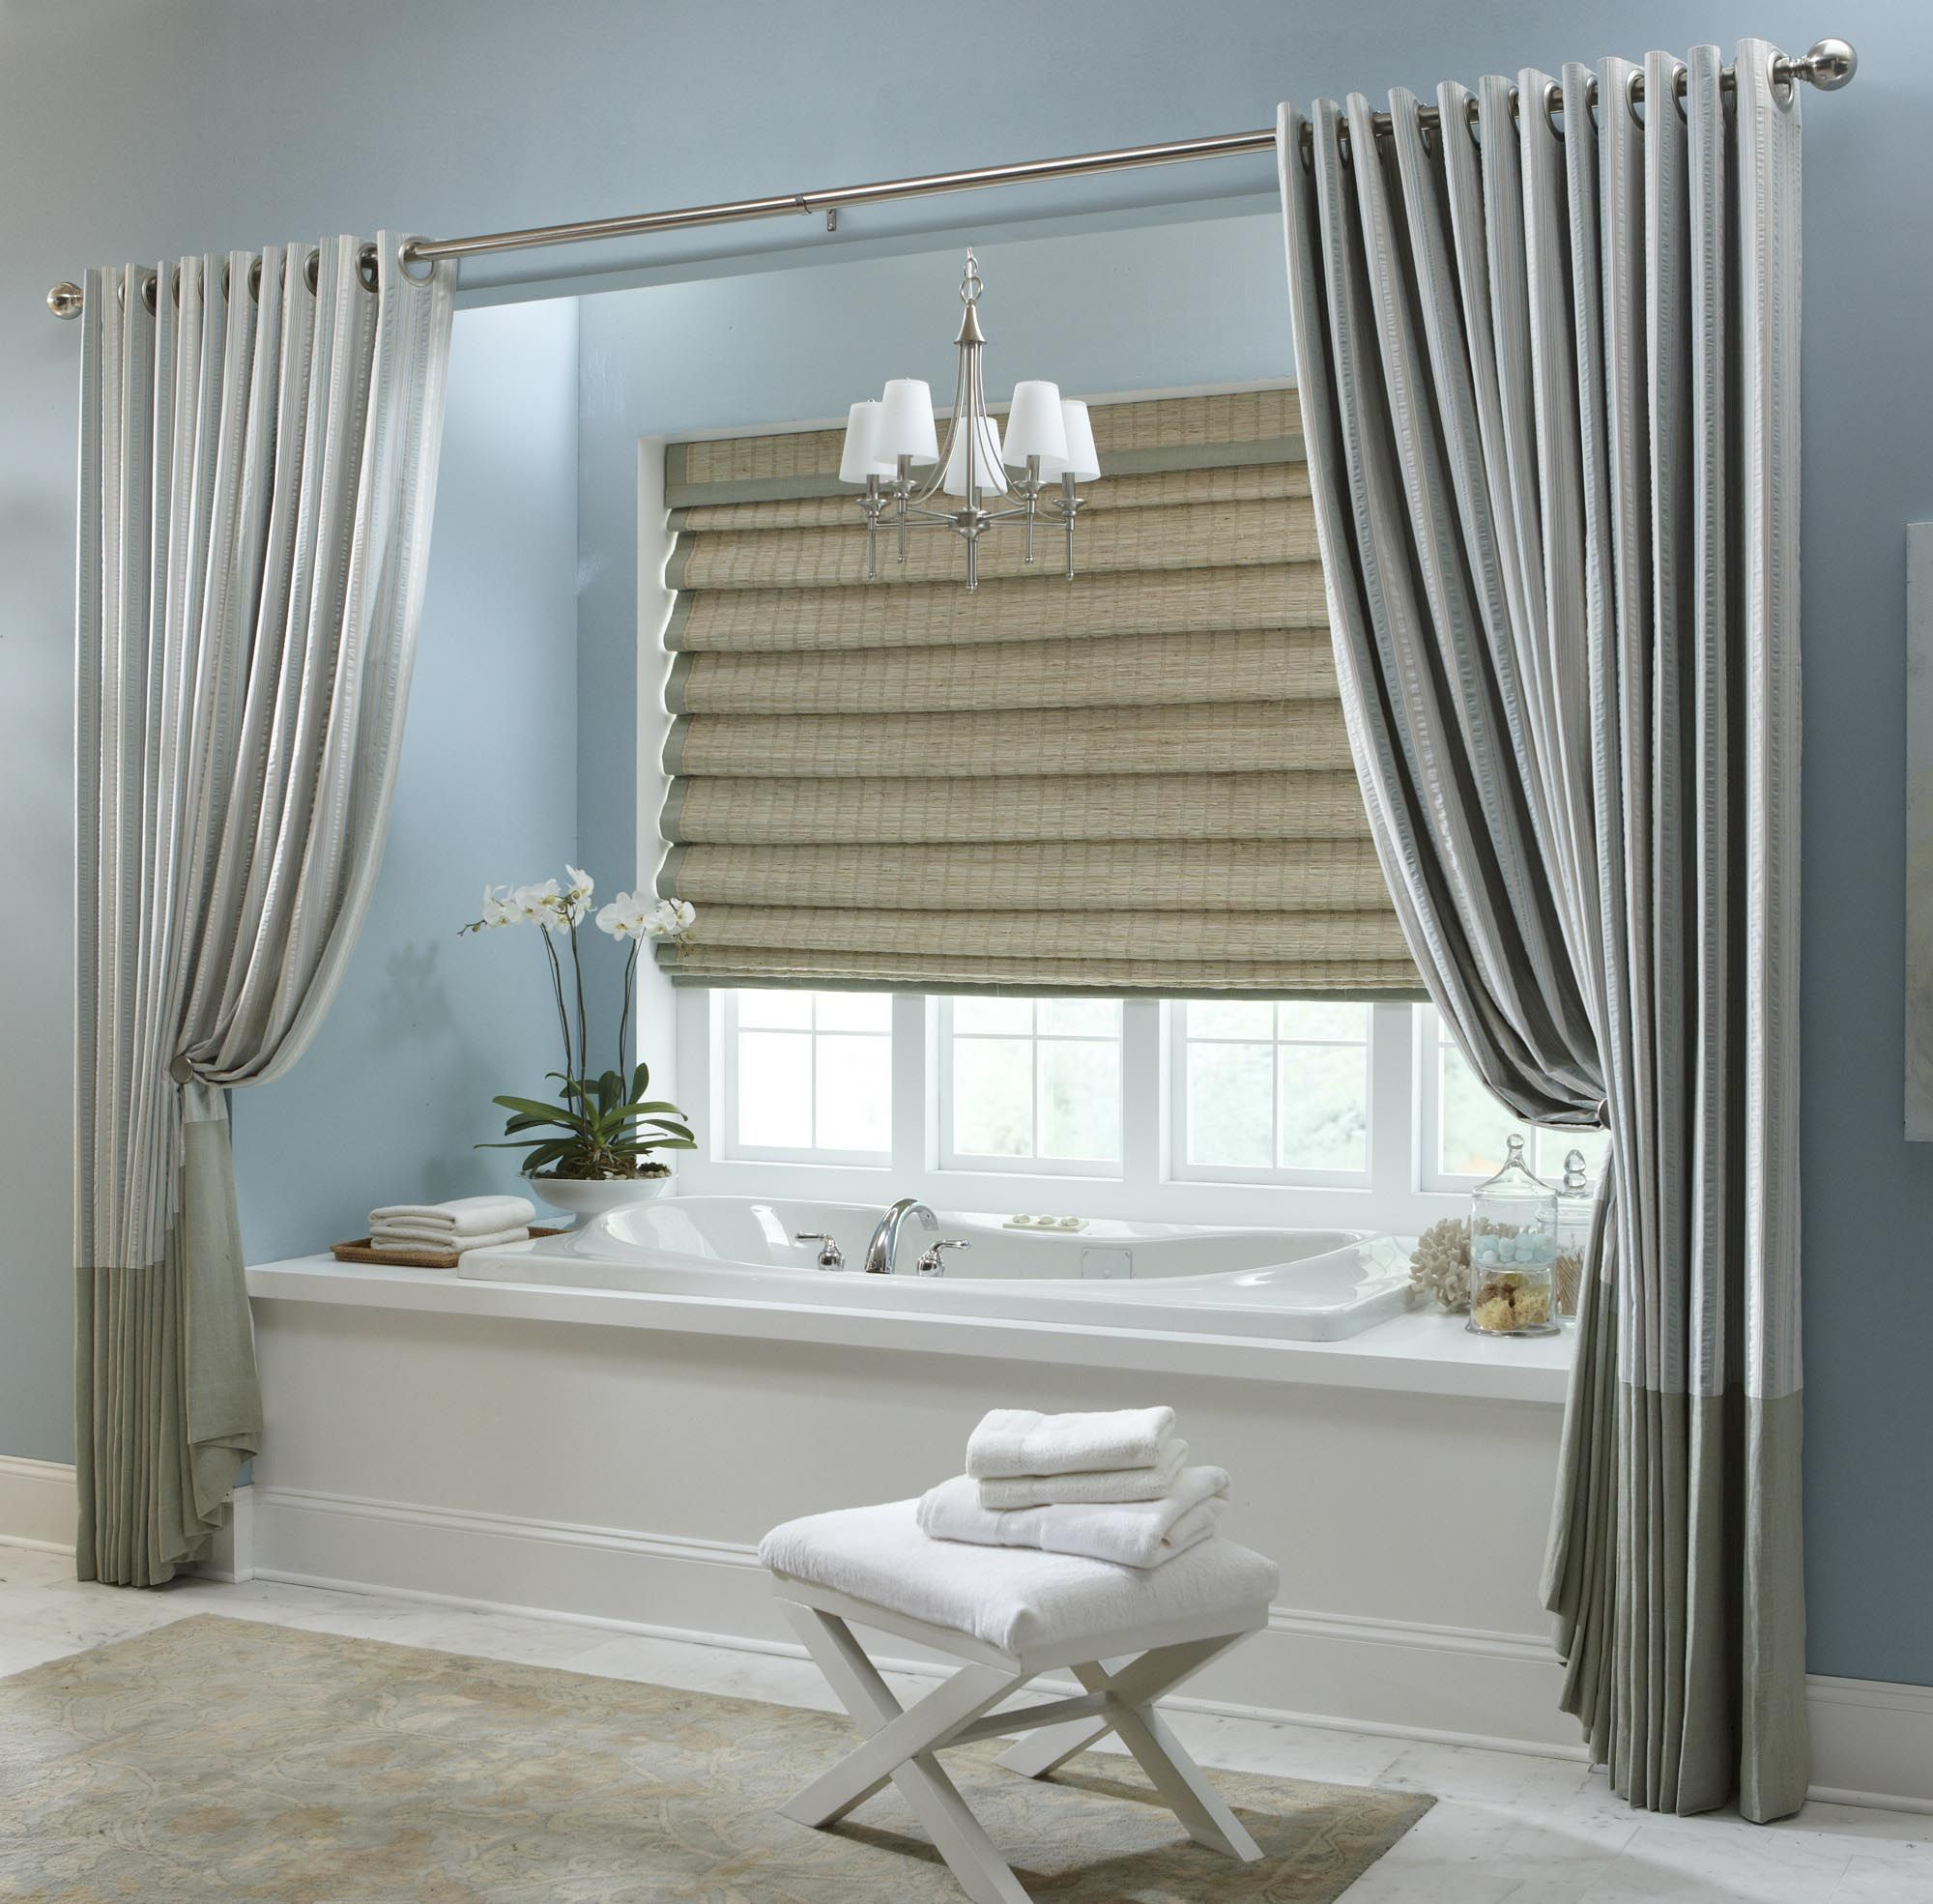 Vinyl Bathroom Window Curtain